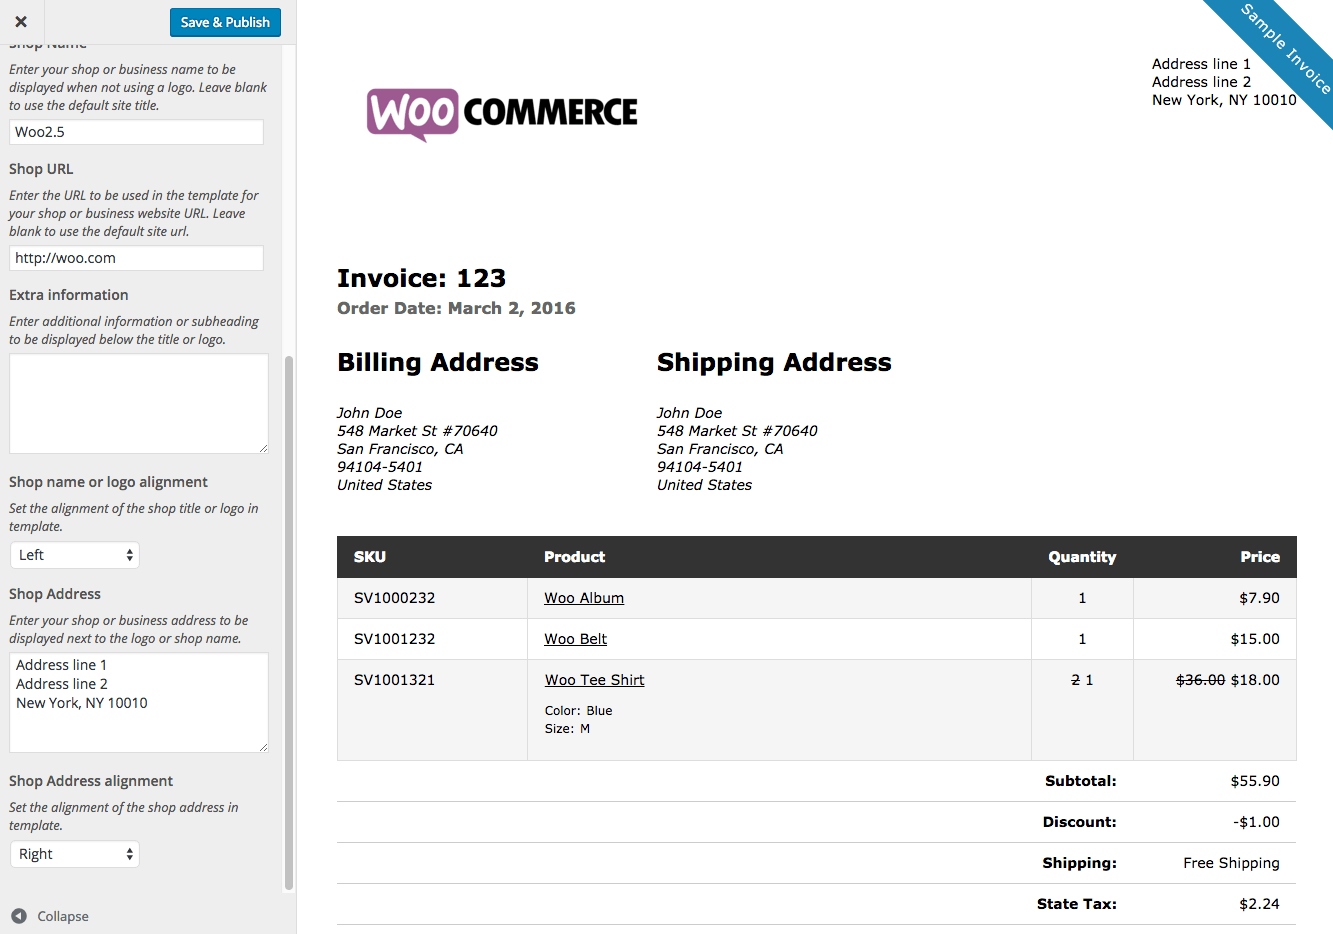 Weirdmailus  Personable Woocommerce Print Invoices Amp Packing Lists  Woocommerce Docs With Inspiring Woocommerce Print Invoices  Packing Lists Customizer With Breathtaking Platepass Hertz Receipt Also Create Receipt Online Free In Addition Request A Delivery Receipt And Used Receipt Printer As Well As Receipts Software Additionally Receipt Scanner Mac From Docswoocommercecom With Weirdmailus  Inspiring Woocommerce Print Invoices Amp Packing Lists  Woocommerce Docs With Breathtaking Woocommerce Print Invoices  Packing Lists Customizer And Personable Platepass Hertz Receipt Also Create Receipt Online Free In Addition Request A Delivery Receipt From Docswoocommercecom